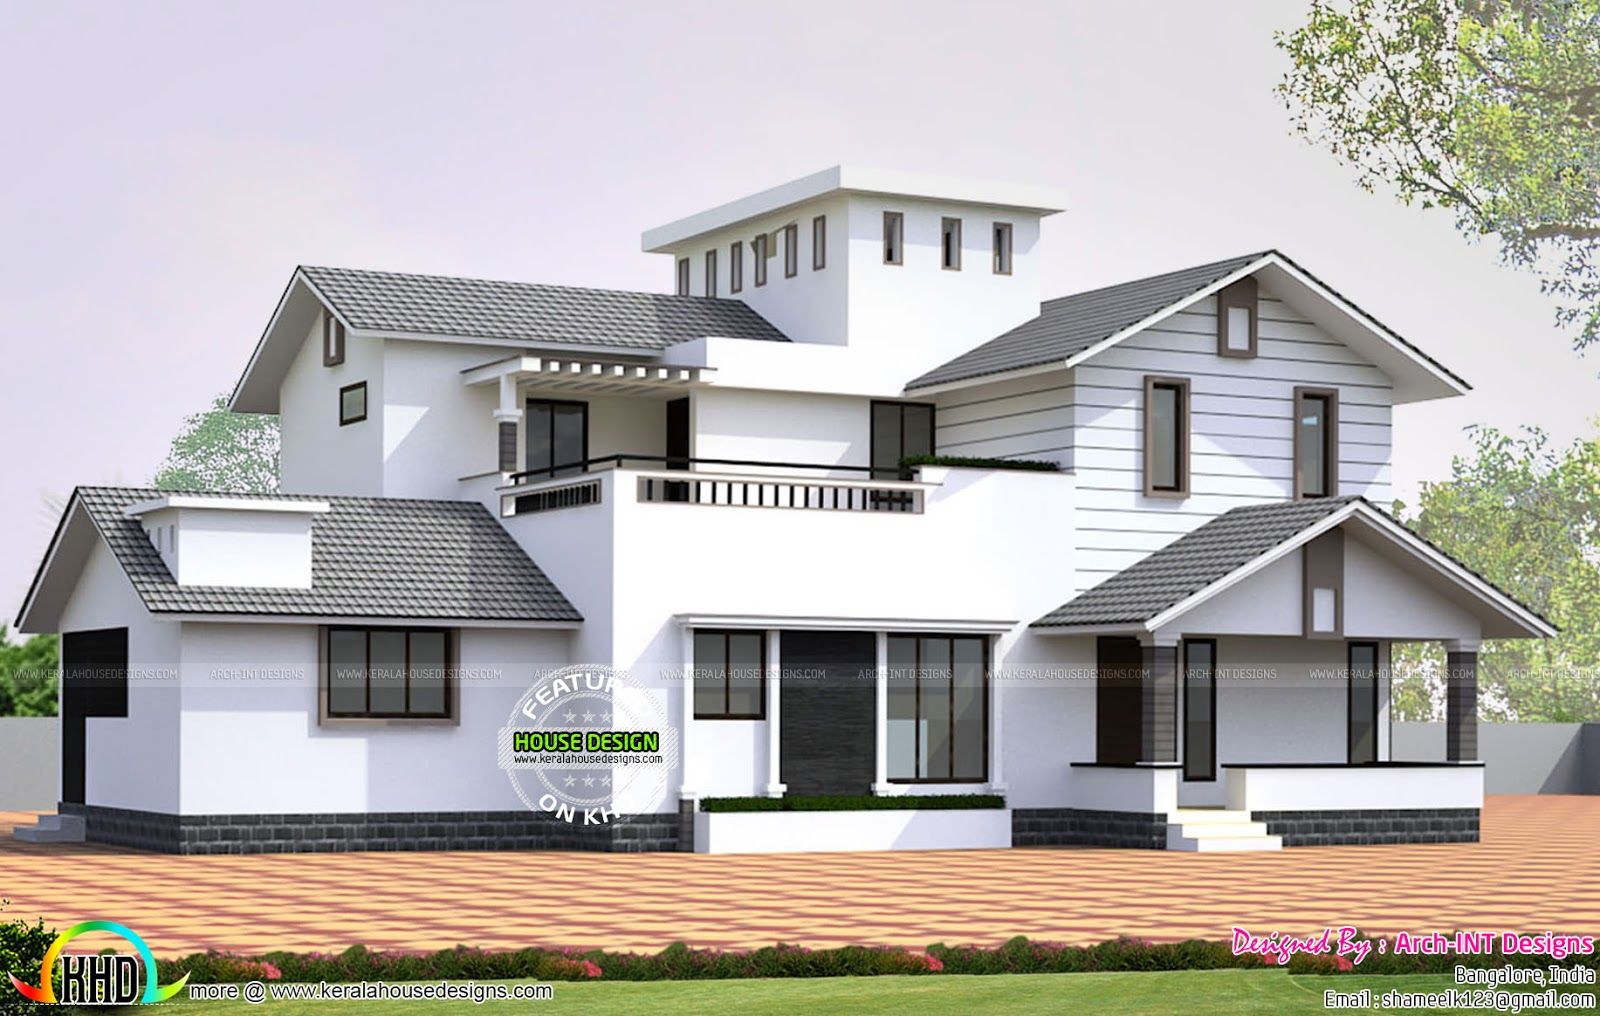 Superieur Kerala Home Design And Floor Plans: House Plan By Arch INT Designs,  Bangalore